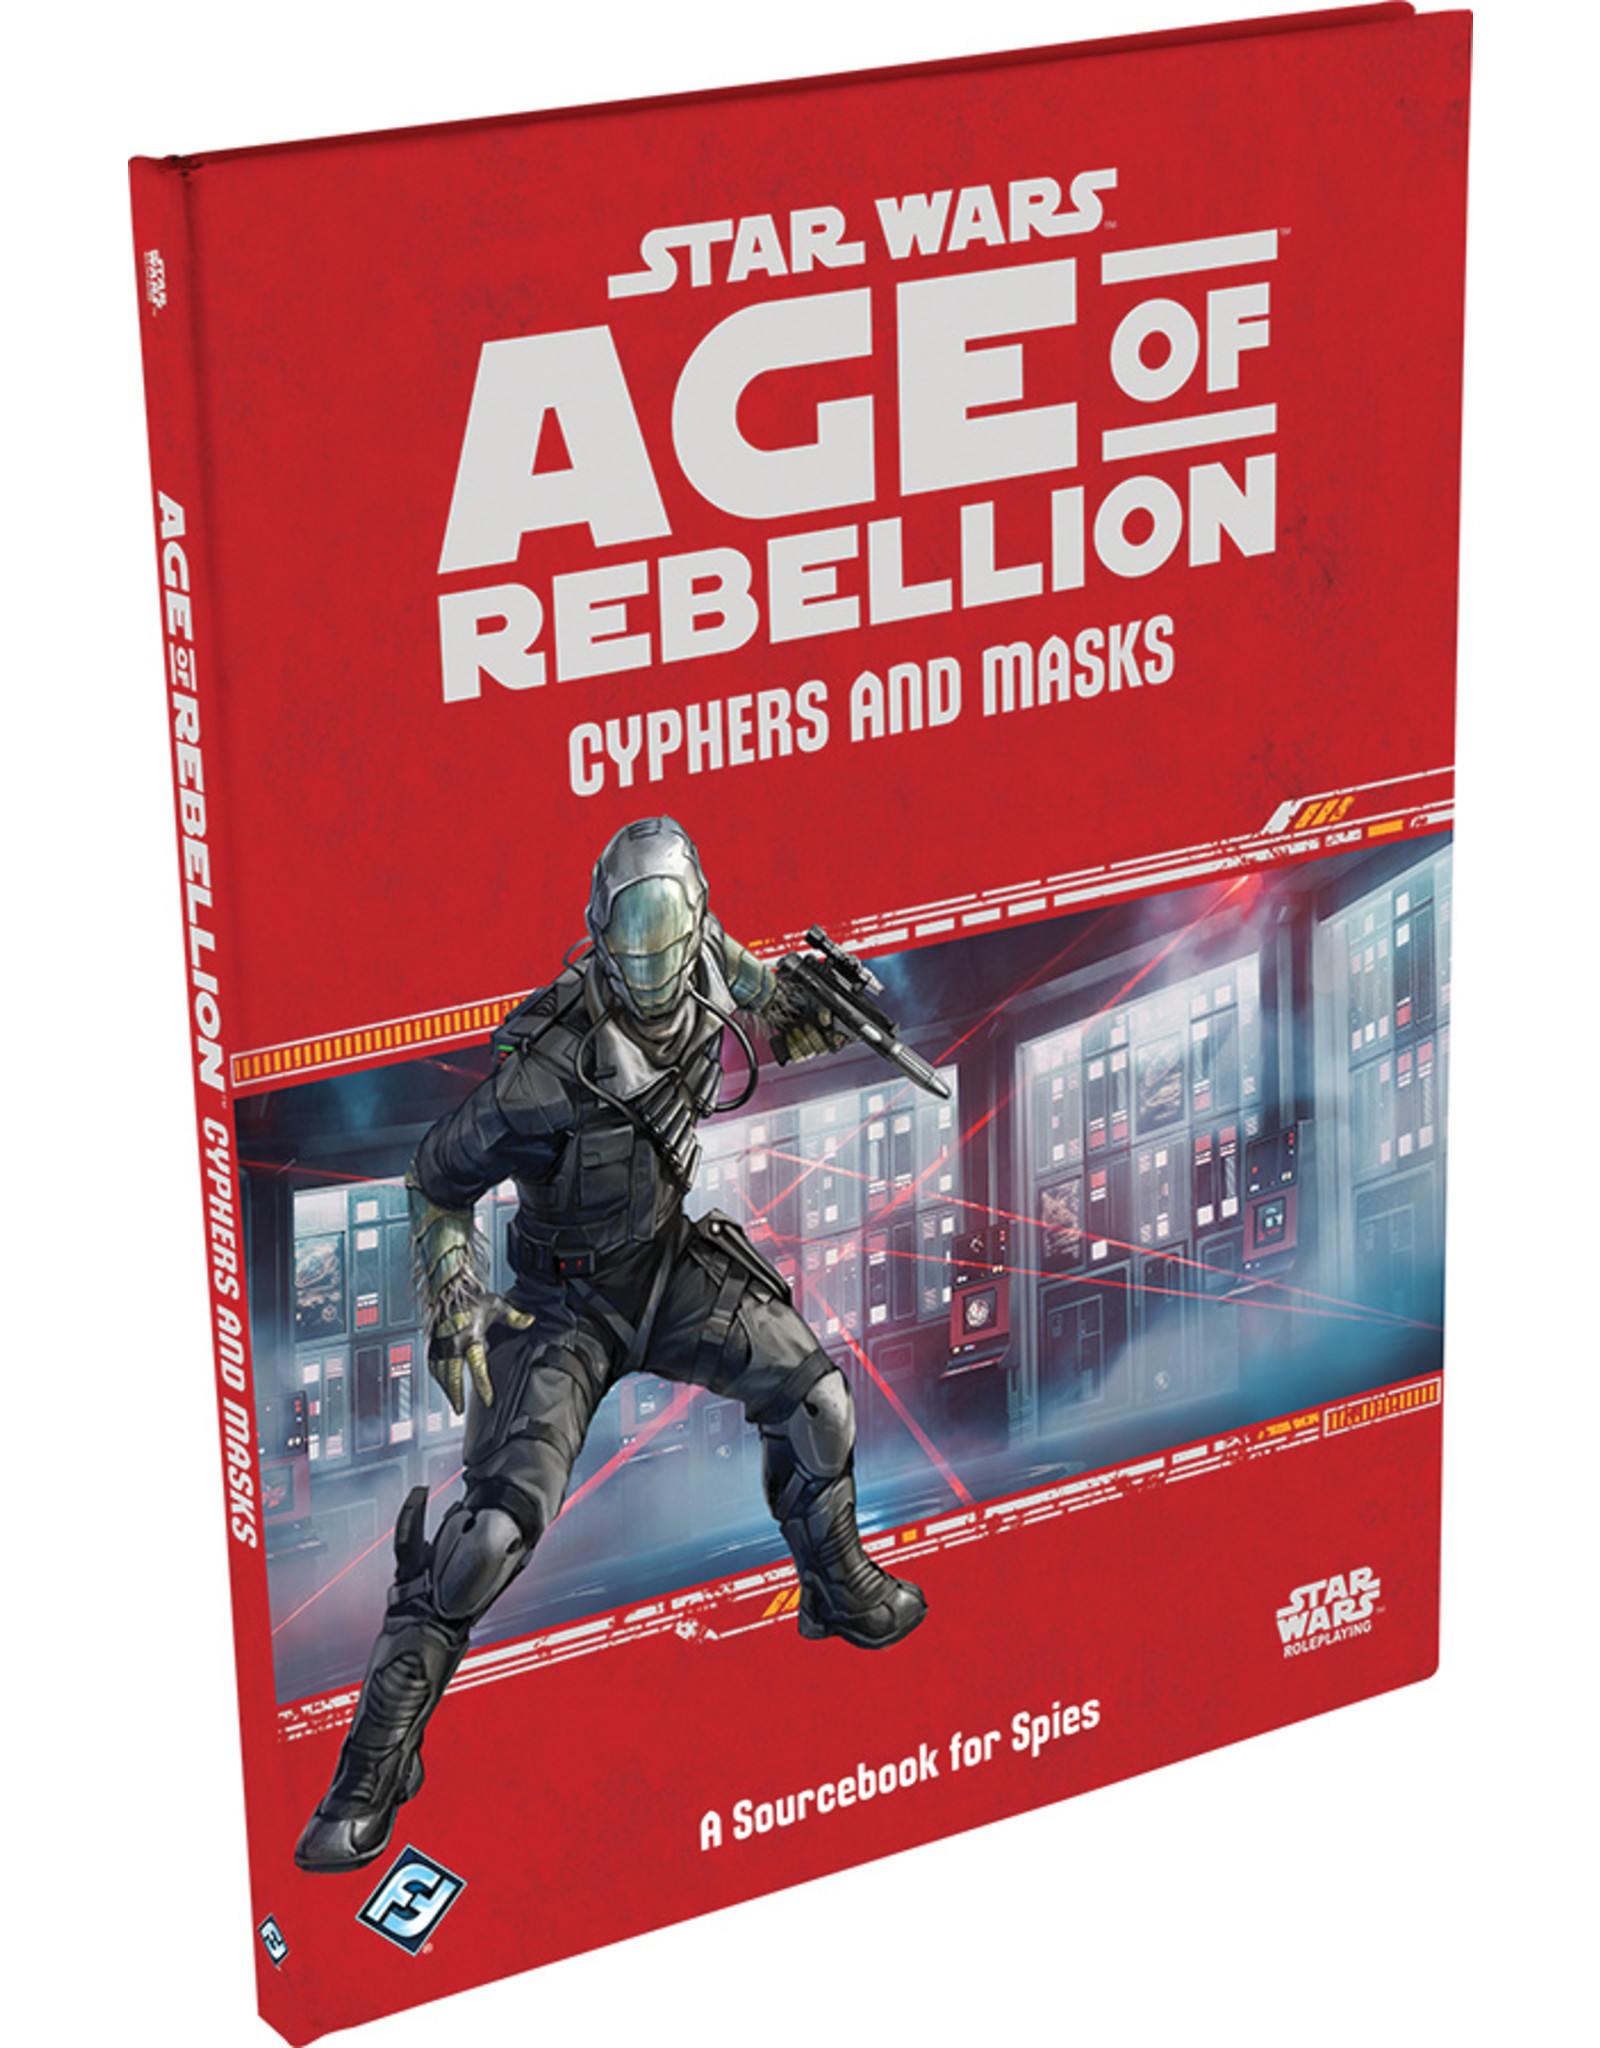 Fantasy Flight Games Star Wars RPG: Age of Rebellion - Cyphers and Masks Hardcover